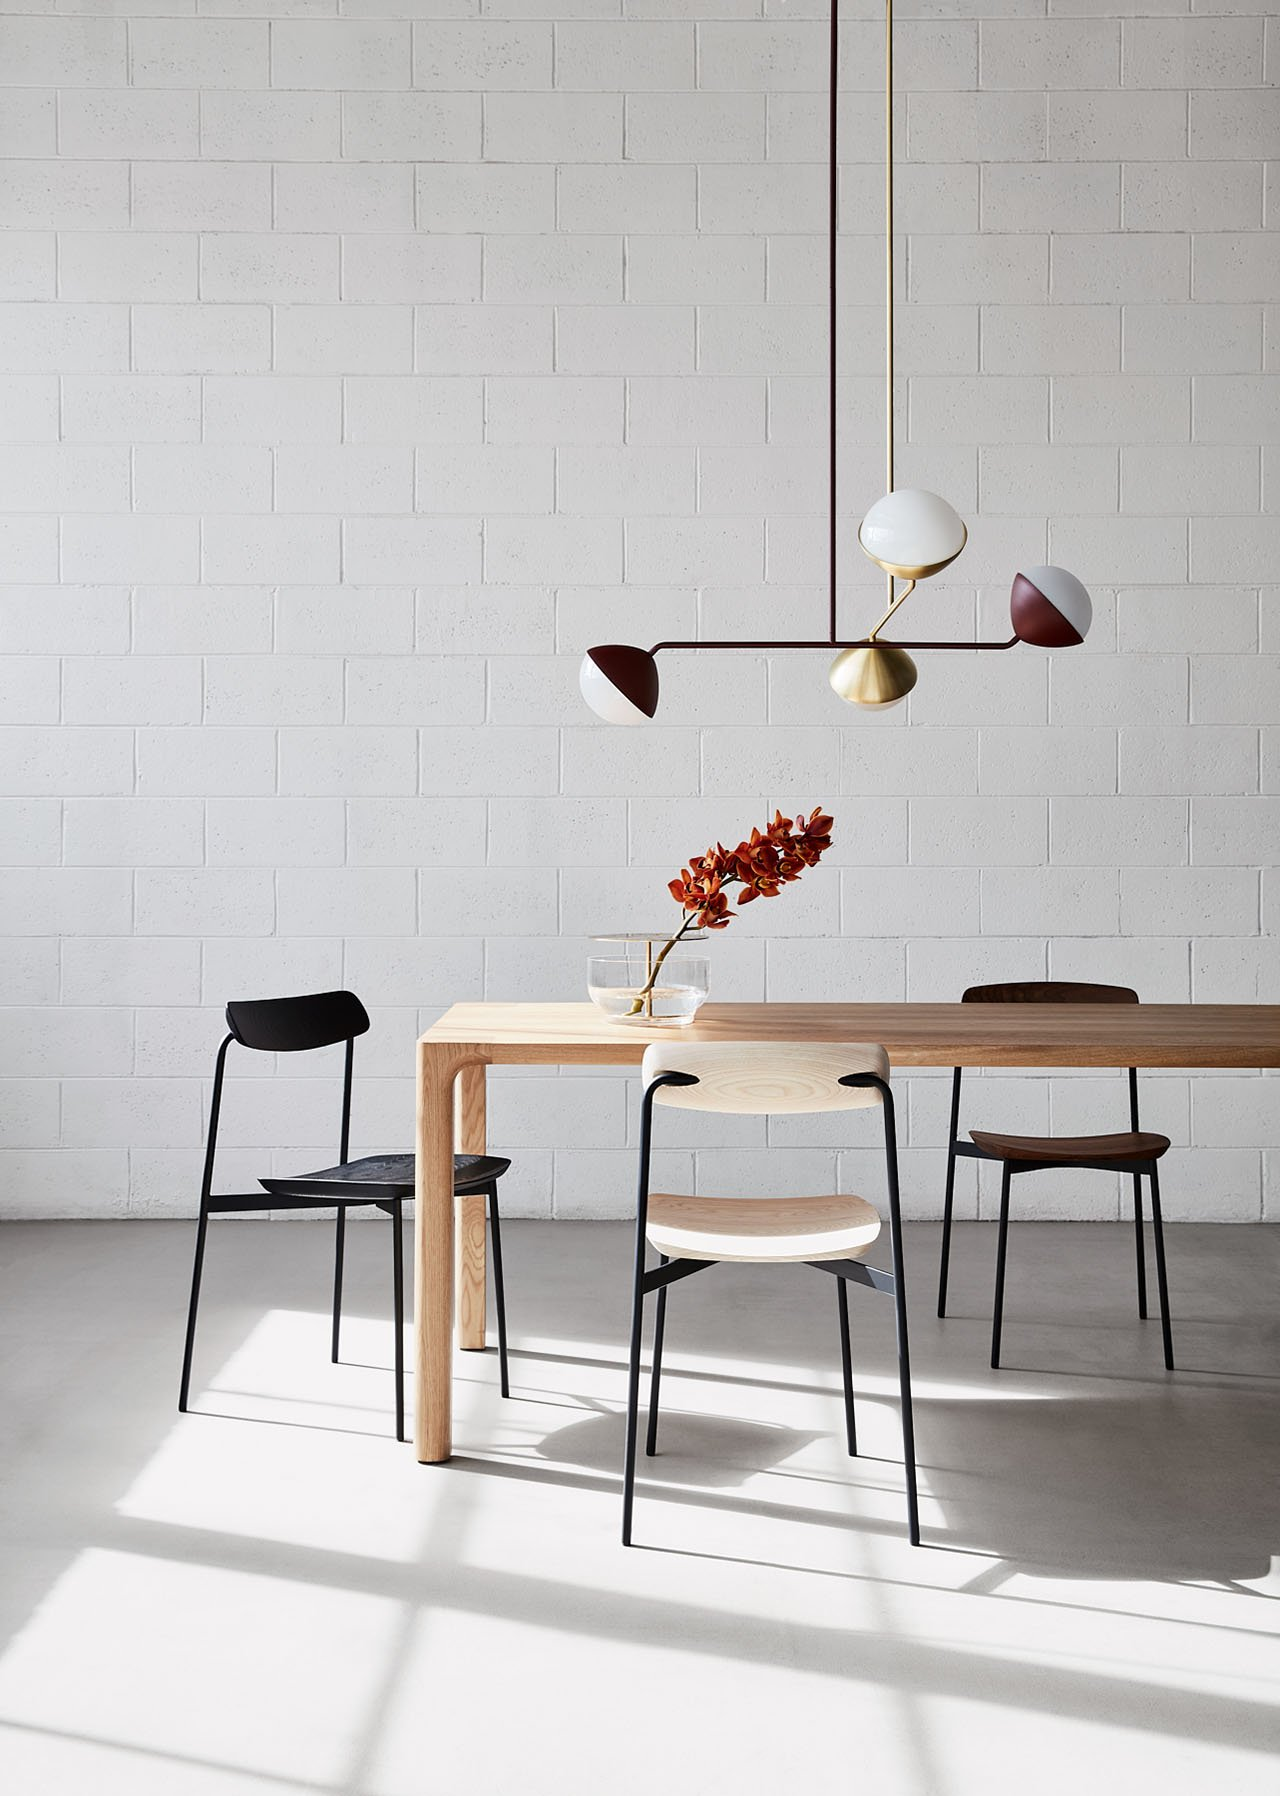 Jolly Double Rod Pendant by Kate Stokes and Sia chair by Tom Fereday for NAU  (LOCAL DESIGN).